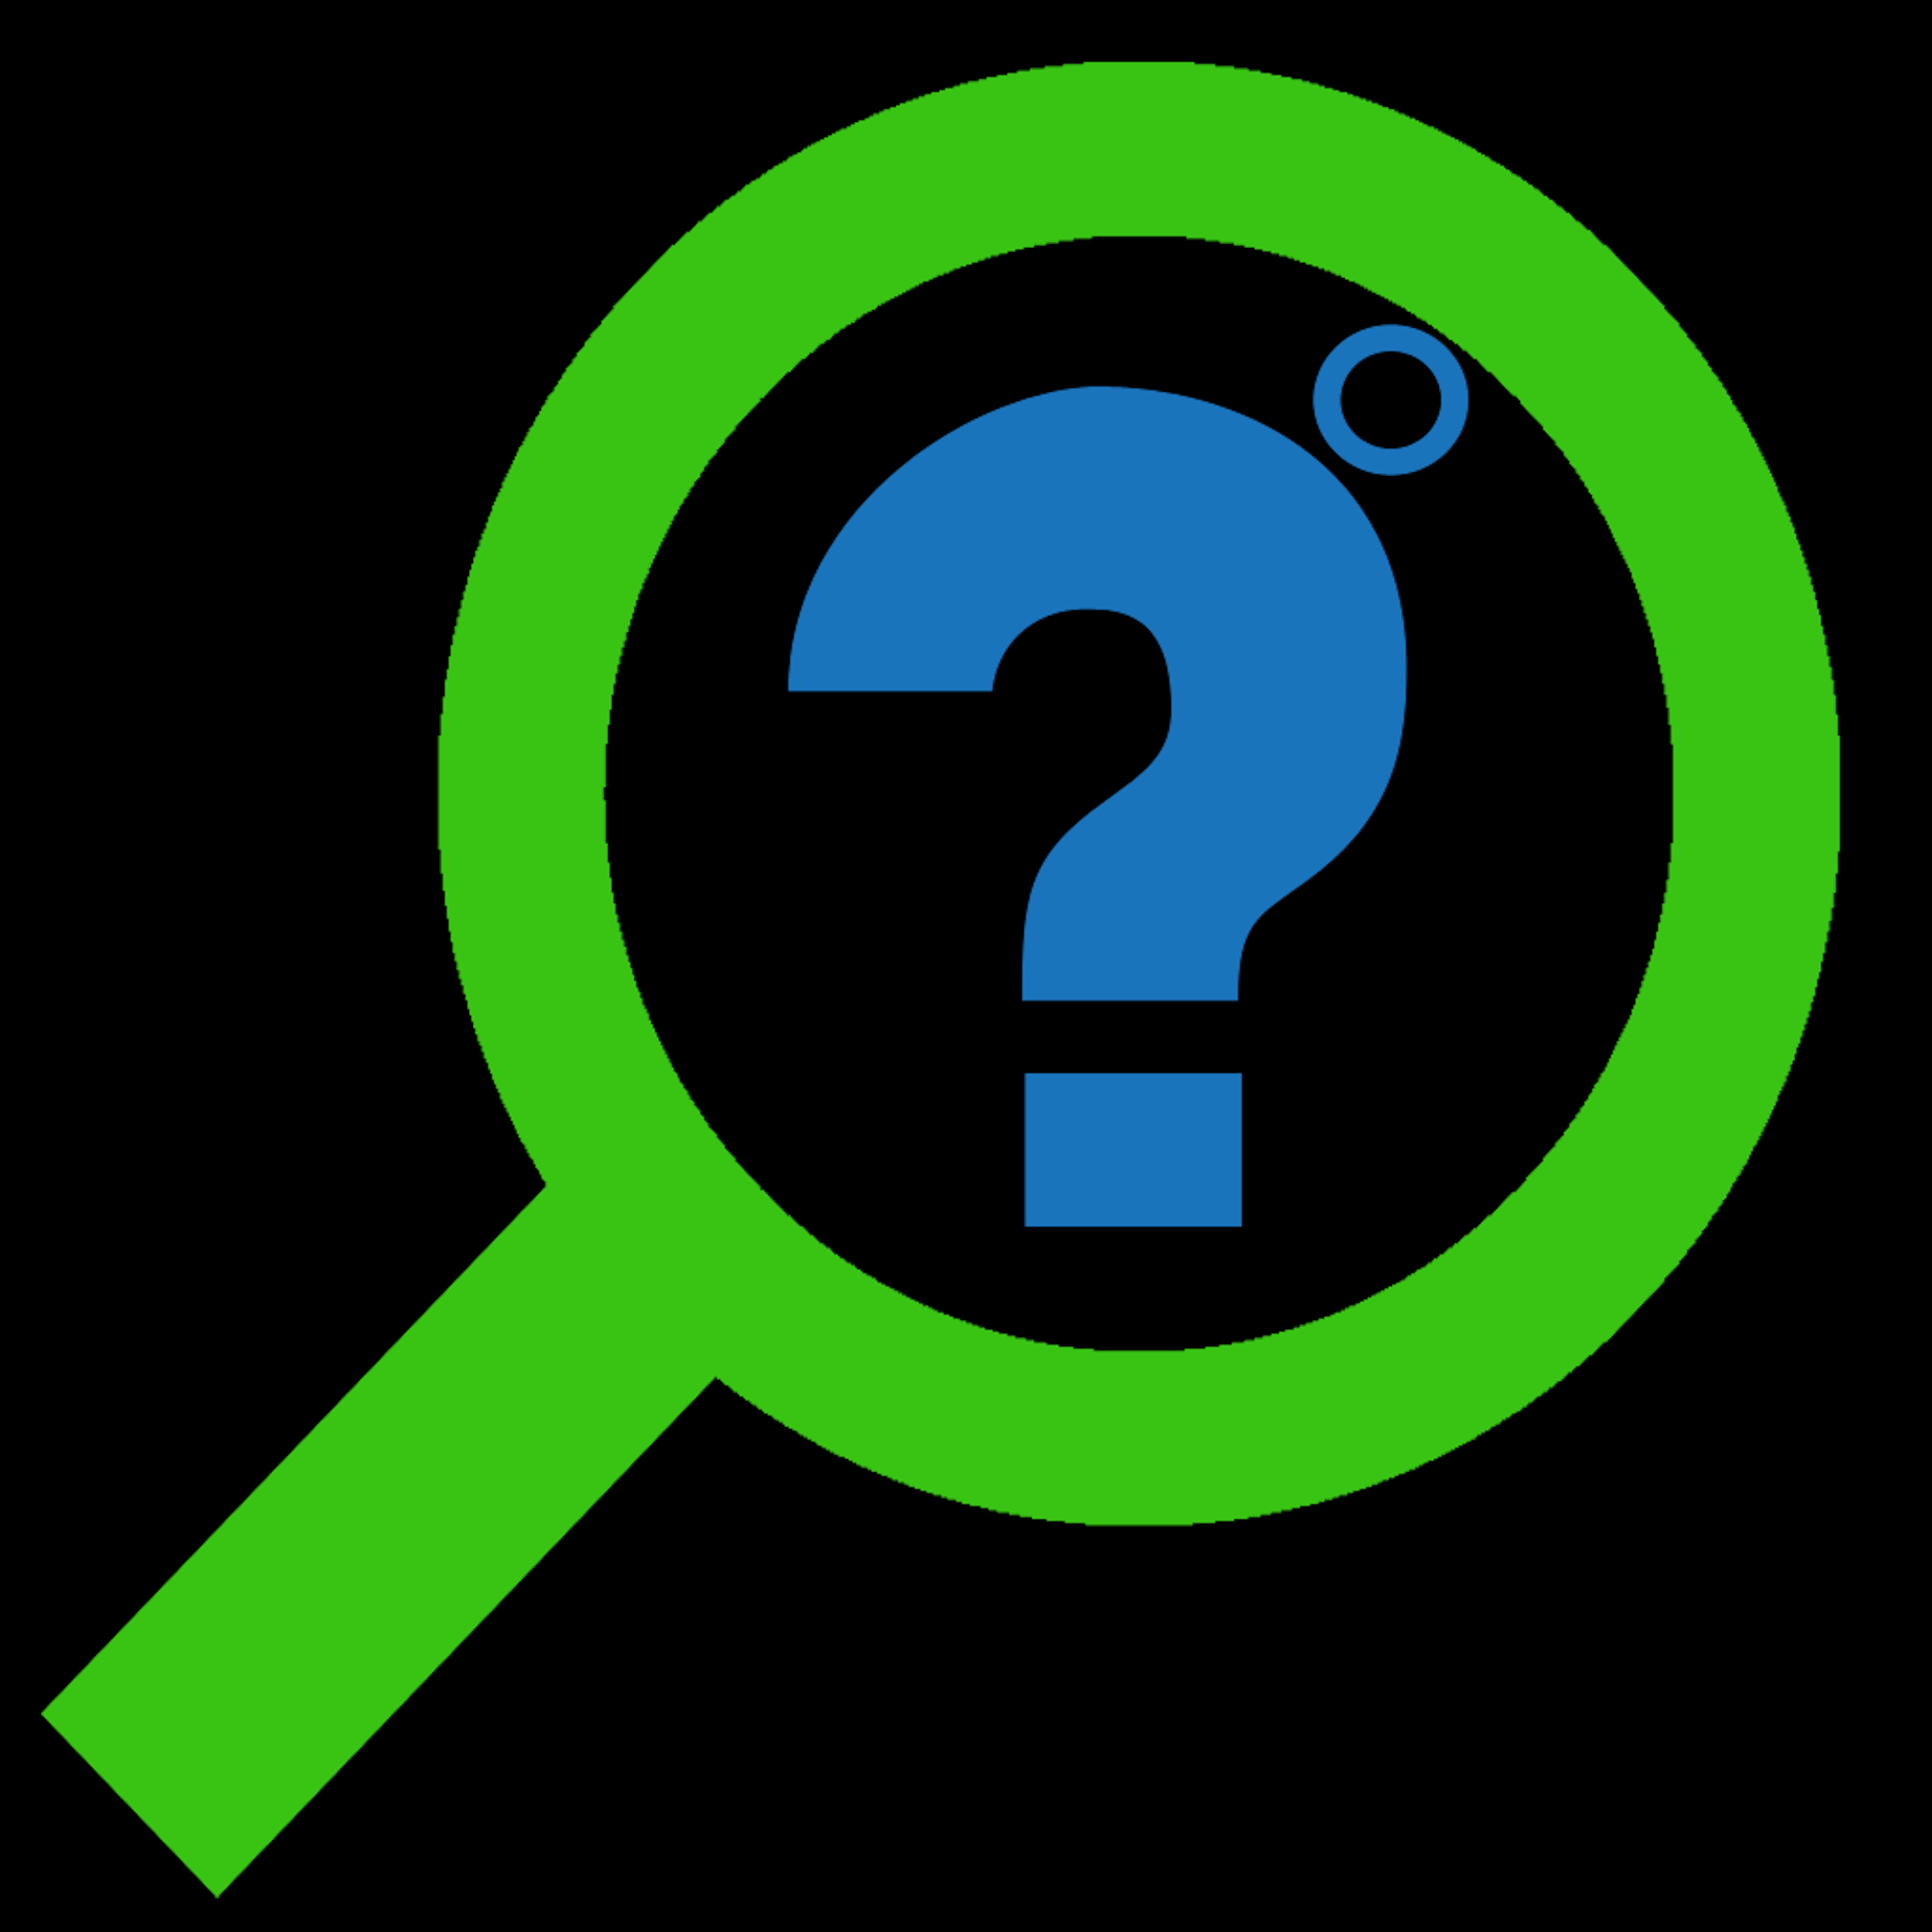 Urbanbyte Fixture Finder Logo blue green on black background with a questions mark inside a magnifiying glass with a degree symbol